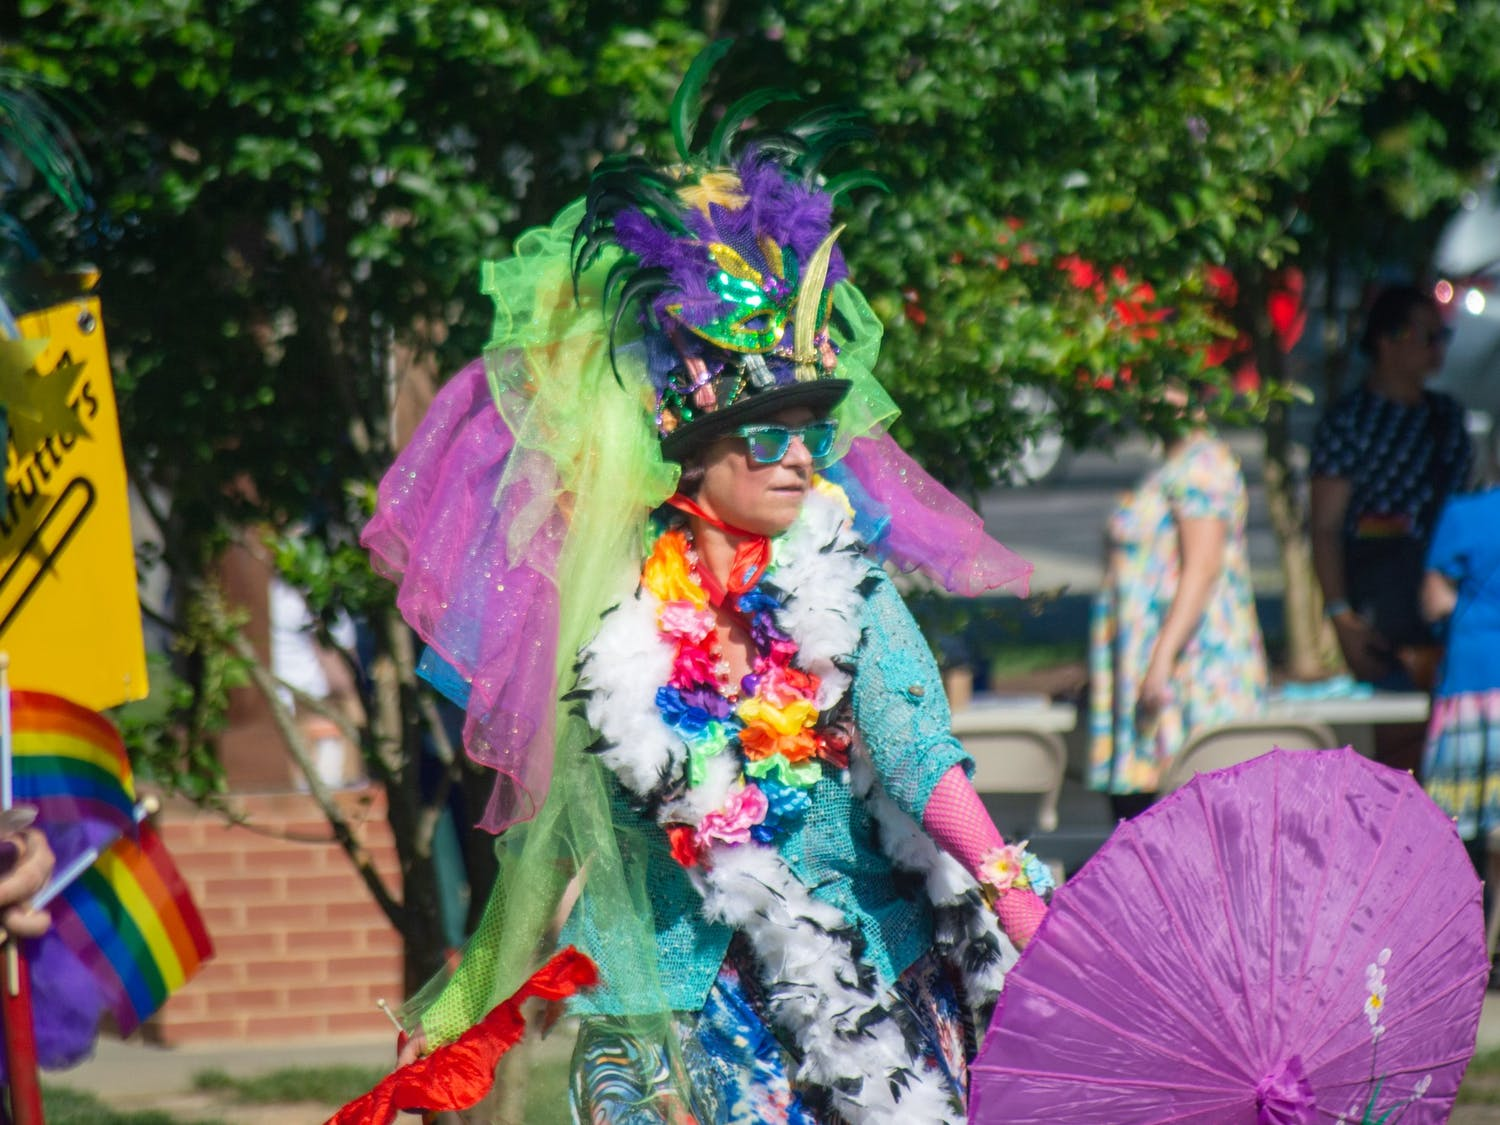 Community member Eliza DuBose dances at the Chapel Hill Carrboro Small Town Pride Food Truck Rodeo and Dance Party in Carrboro on Thursday June 24, 2021.